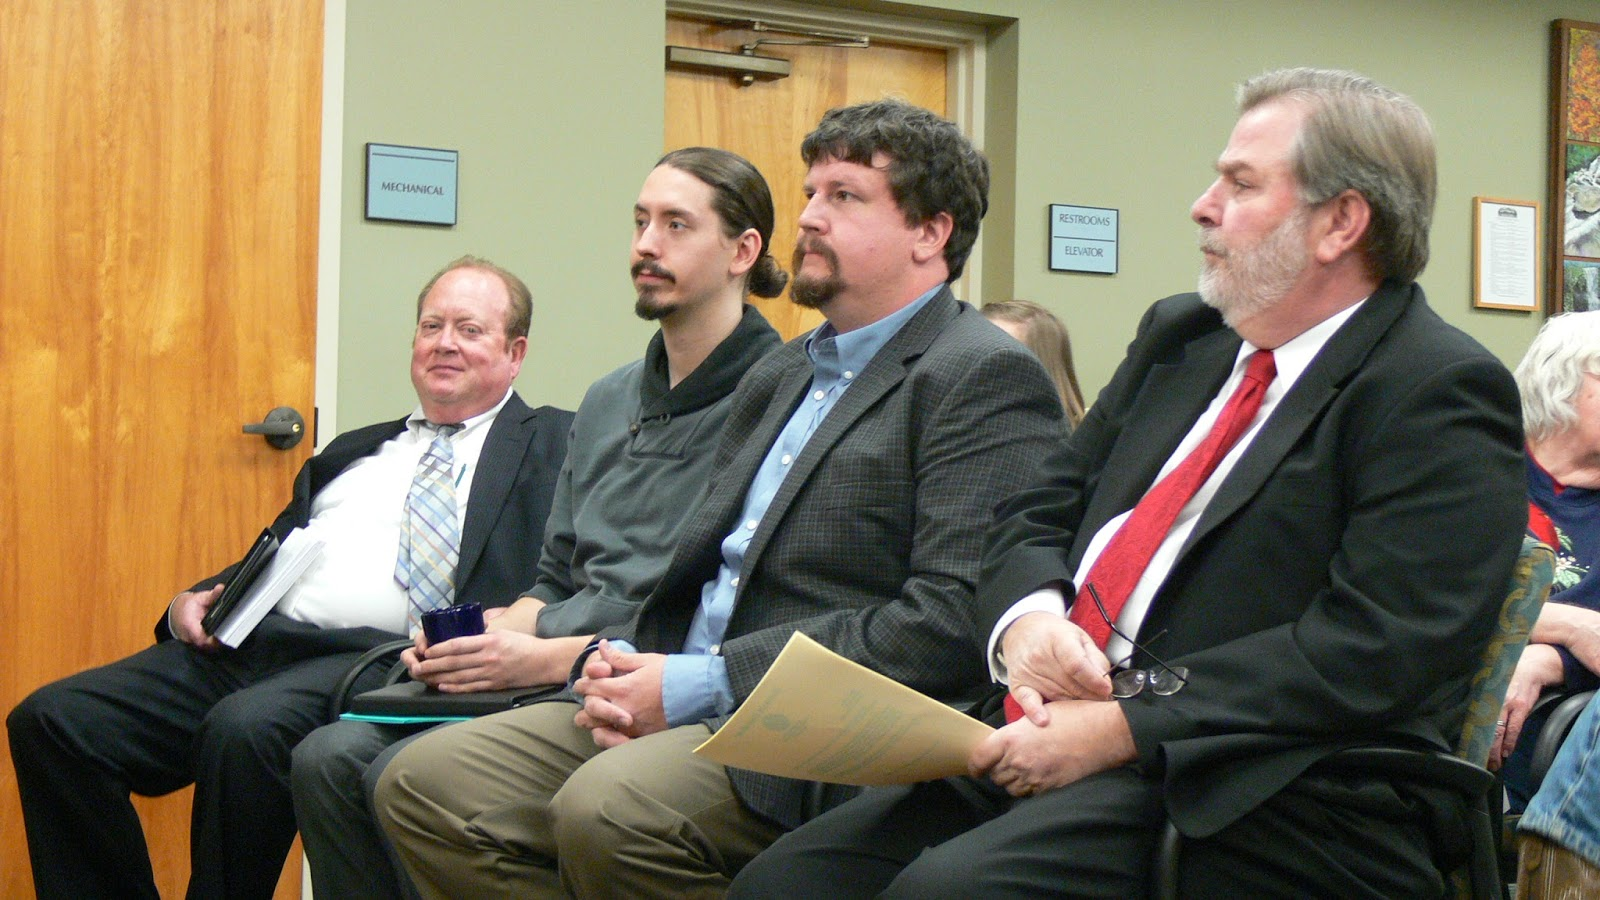 New Aldermen wait to be sworn into office